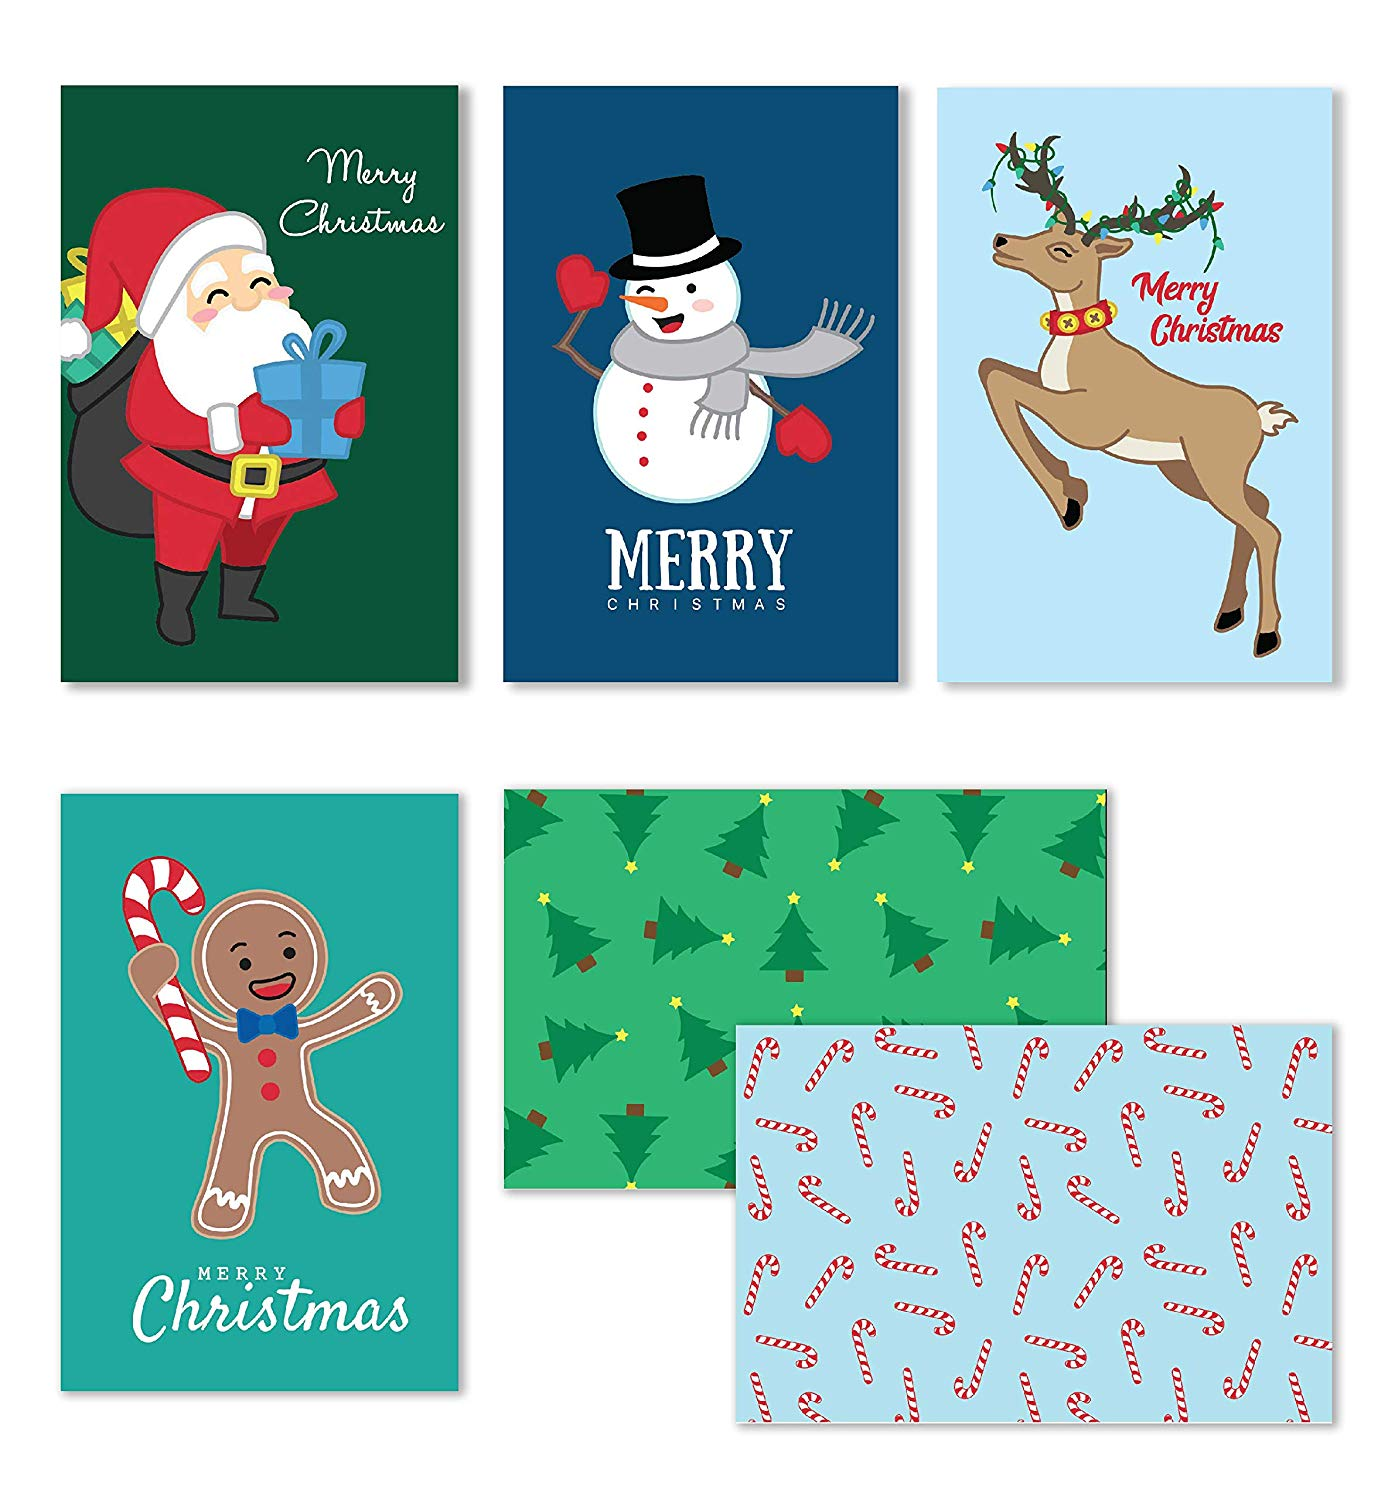 Tis the season to be married clipart clip art free library Merry Christmas Cards, Traditional Holiday Cards, Xmas Greeting Cards,  Boxed Christmas Cards, Assorted Holiday Card Pack, 36 Christmas Greeting  Cards ... clip art free library